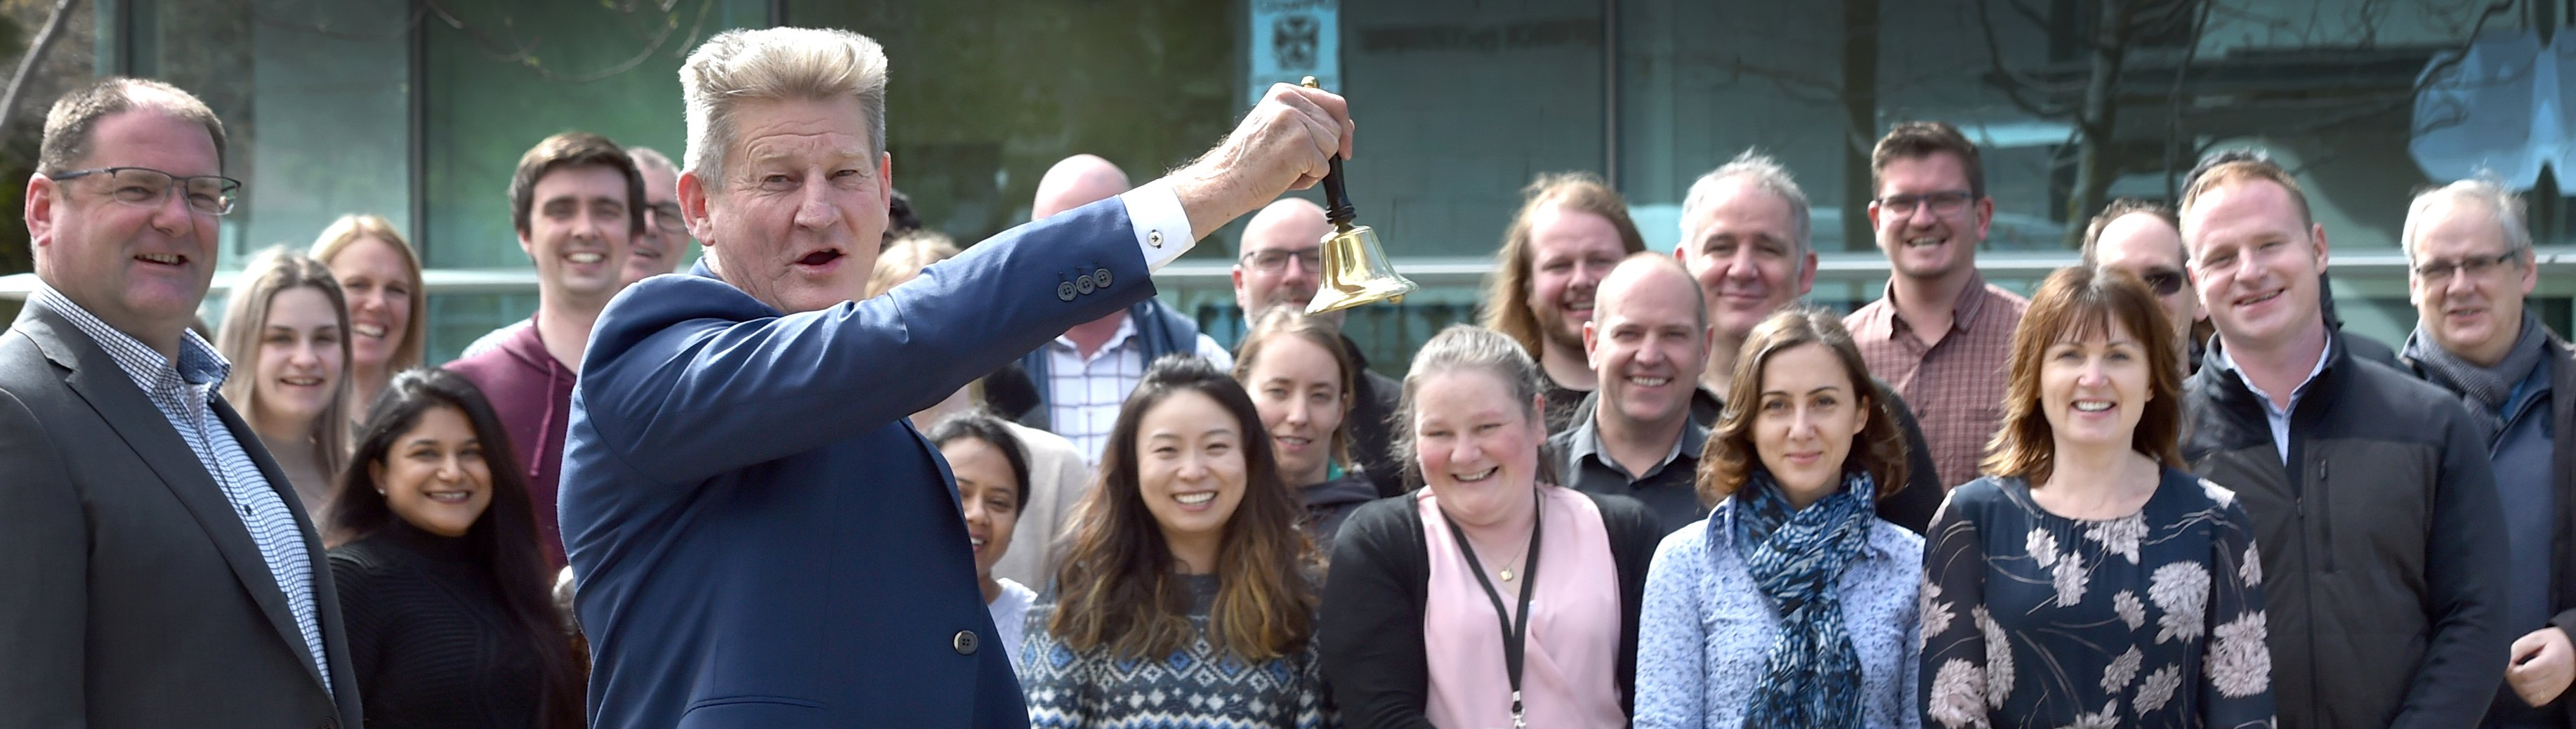 Pacific Edge chief executive David Darling rings a bell, watched by staff, in celebration of the...